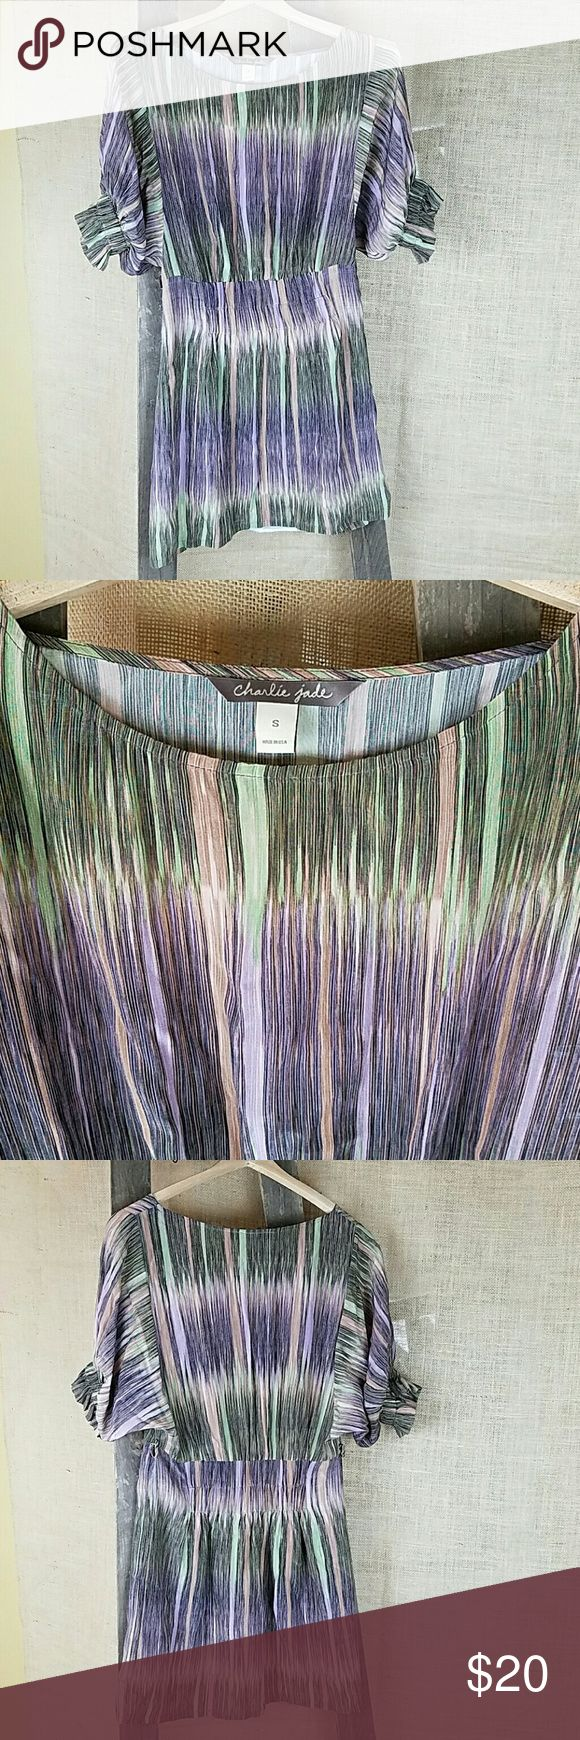 """Charlie Jade womens S 100% silk striped tunic Charlie Jade womens S/Small 100% silk striped tunic shirt short sleeve. Missing the belt.  Under arm to under arm: 15"""" Dress length: 32.5"""" Charlie Jade  Tops Tunics"""